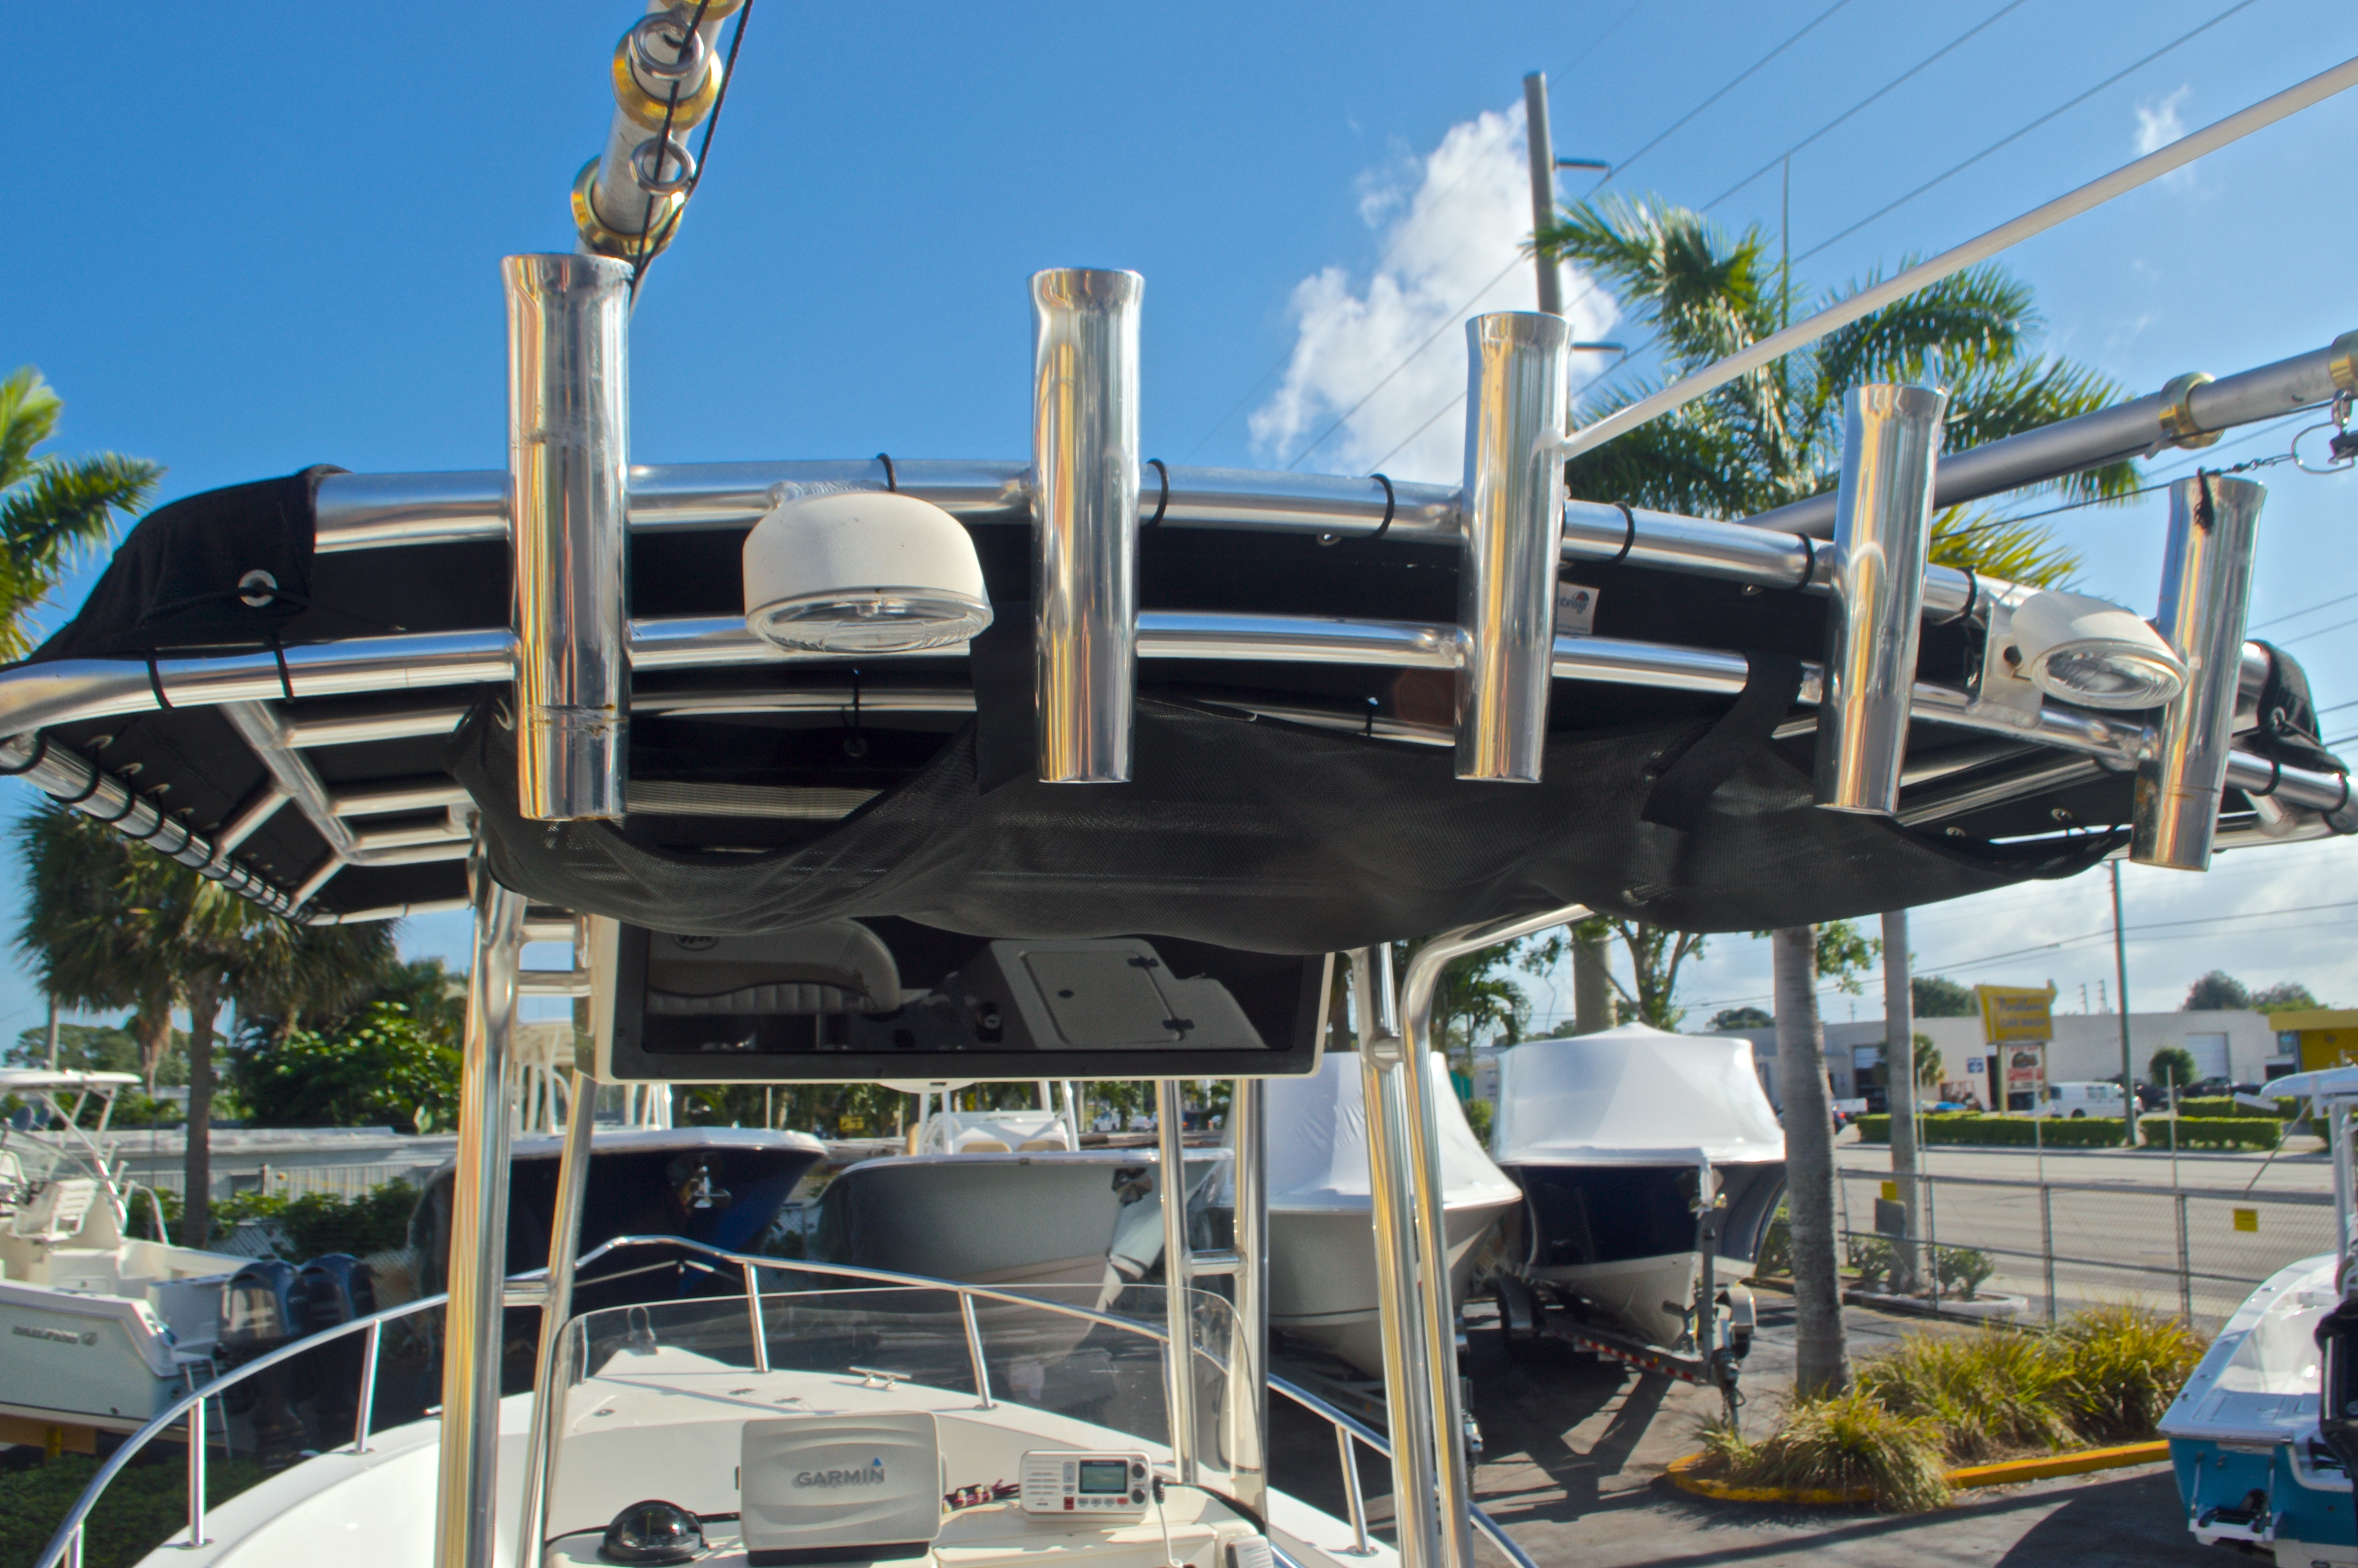 Thumbnail 22 for Used 2009 Key West 225 Center Console boat for sale in West Palm Beach, FL